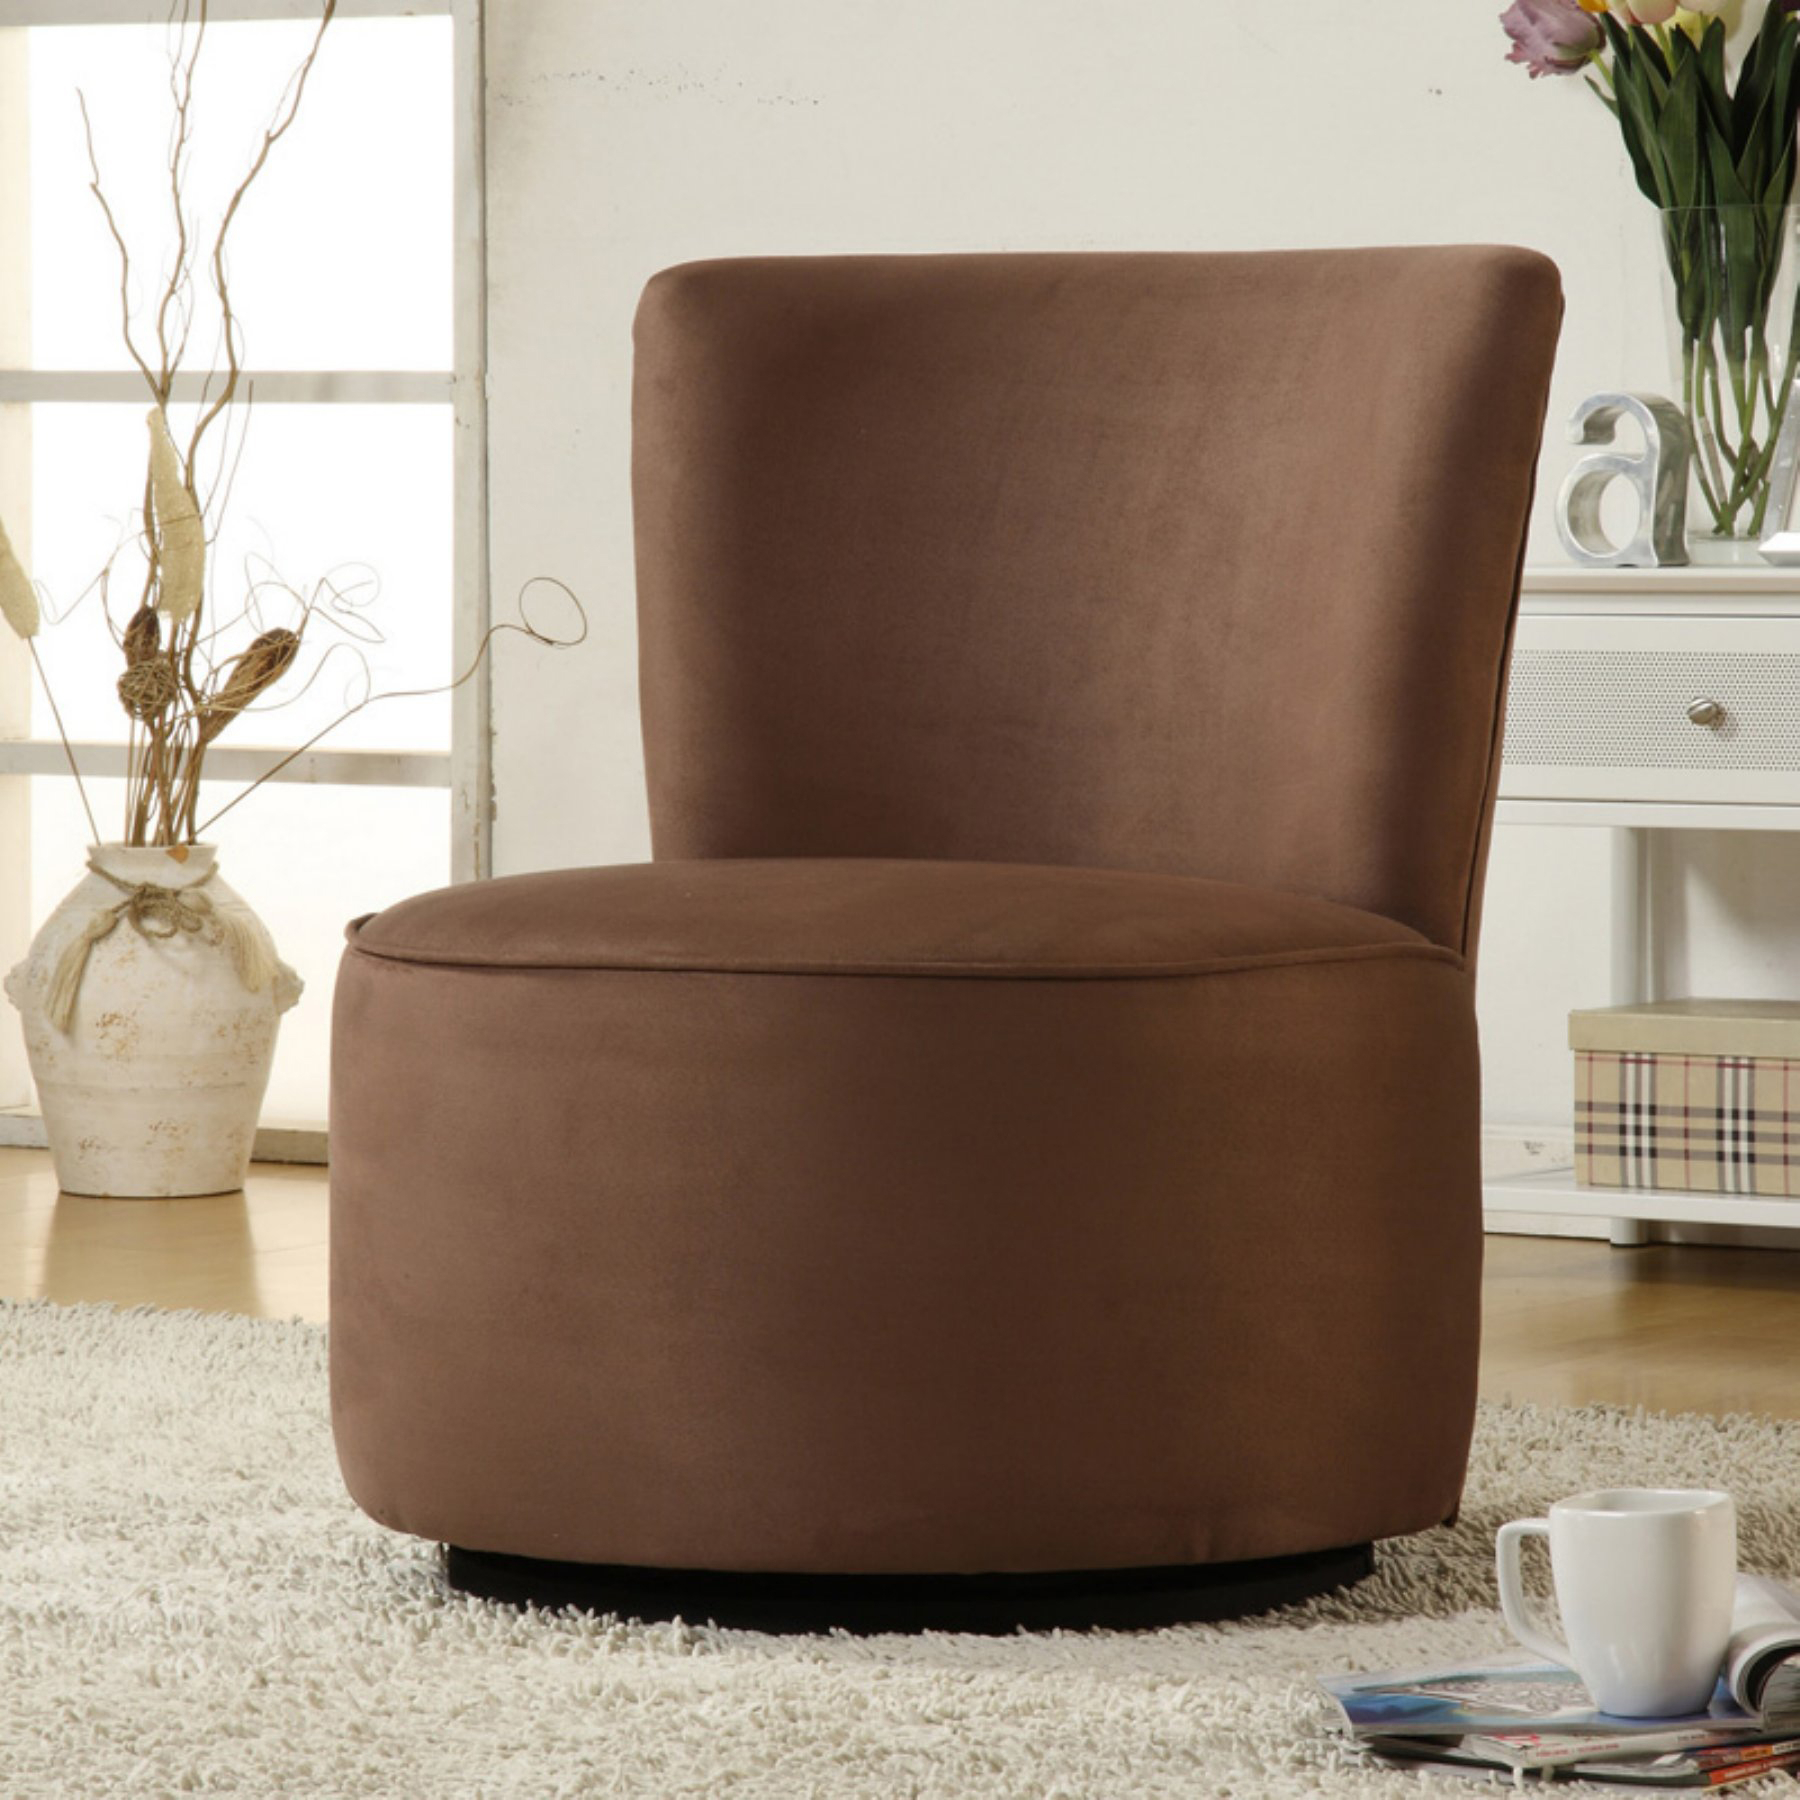 Aiden Round Fabric Swivel Chair Brown – Walmart Intended For Aidan Ii Swivel Accent Chairs (View 14 of 20)